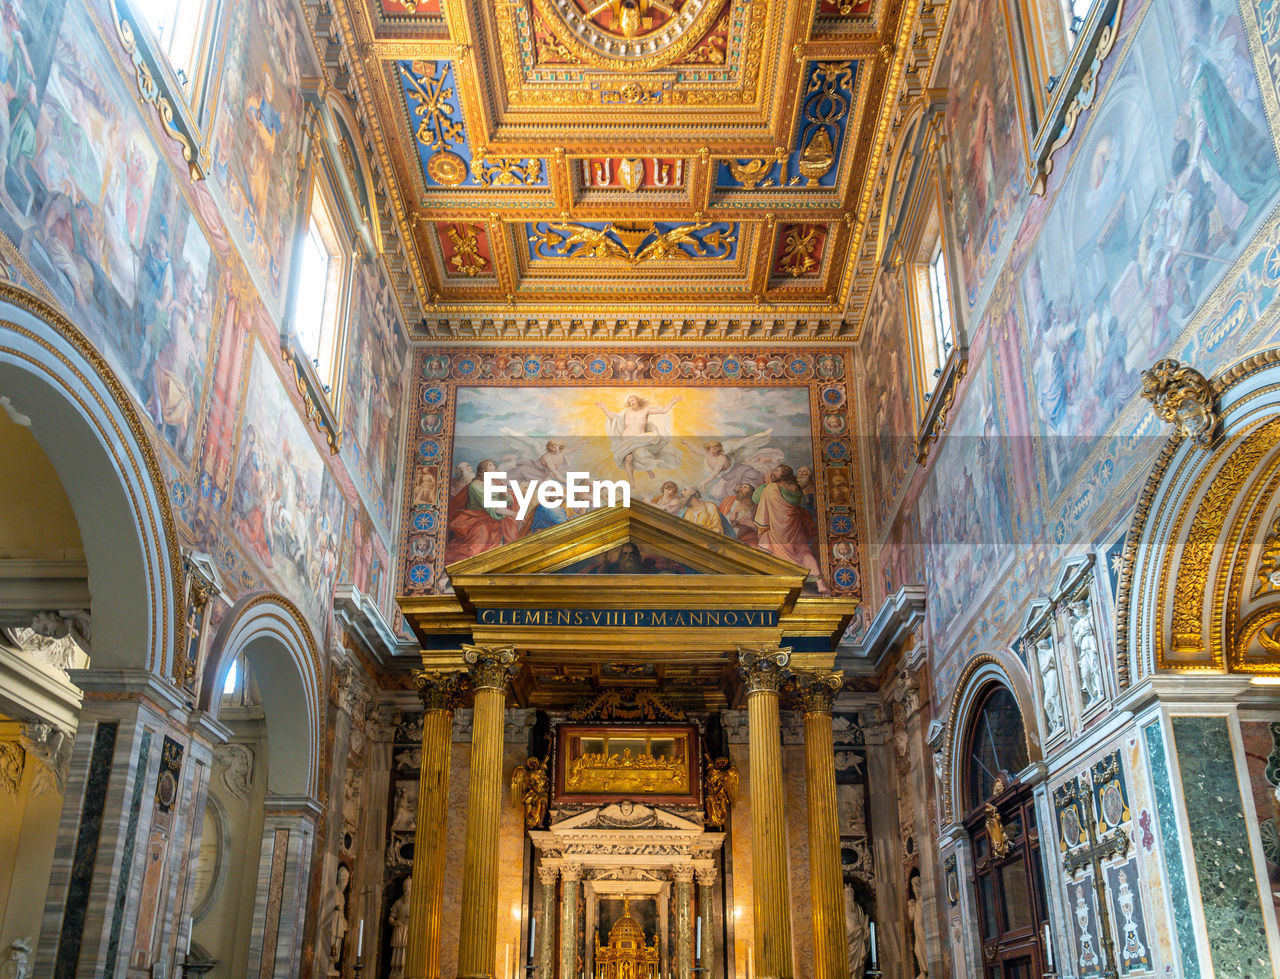 built structure, architecture, religion, belief, place of worship, low angle view, travel destinations, building, spirituality, art and craft, indoors, no people, history, ornate, the past, ceiling, architectural column, mural, altar, fresco